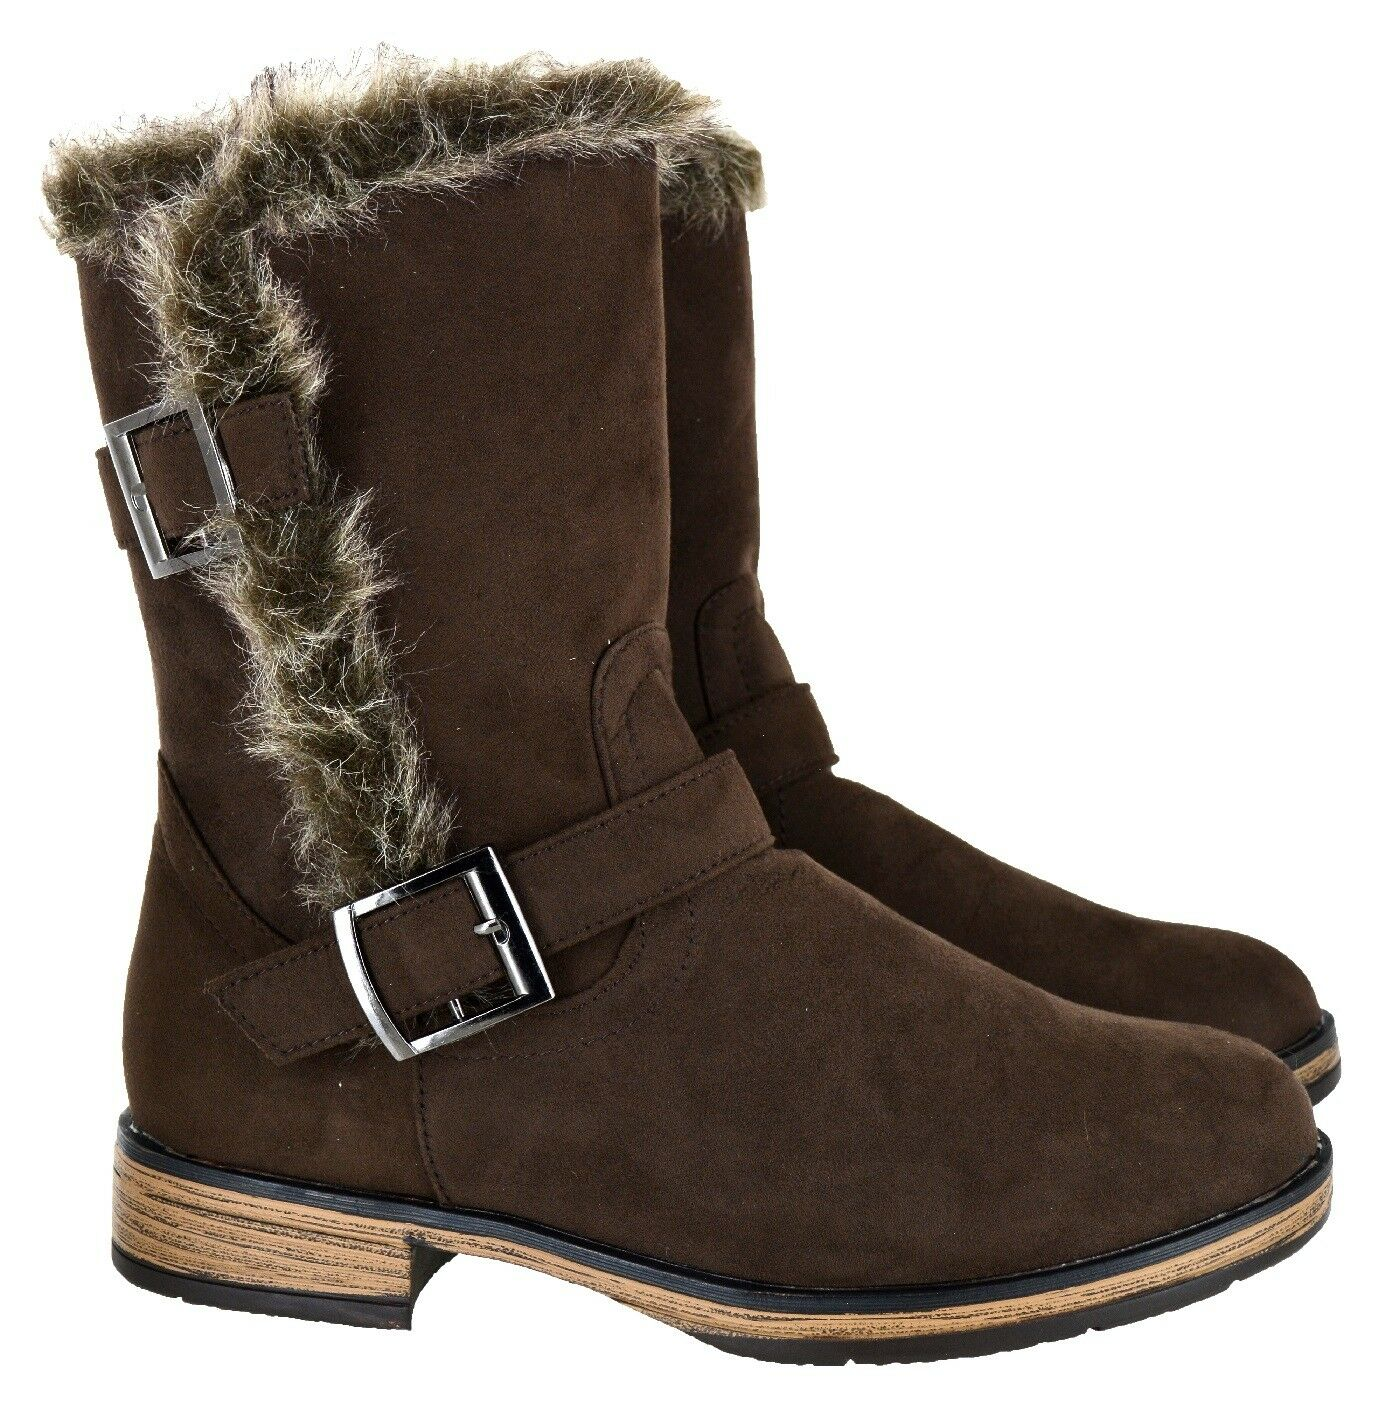 LADIES WINTER WARM FURRY WARM WINTER COMFY zapatos Mujer LATEST ANKLE BUCKLE ZIP botas SZ 3-9 a9c524